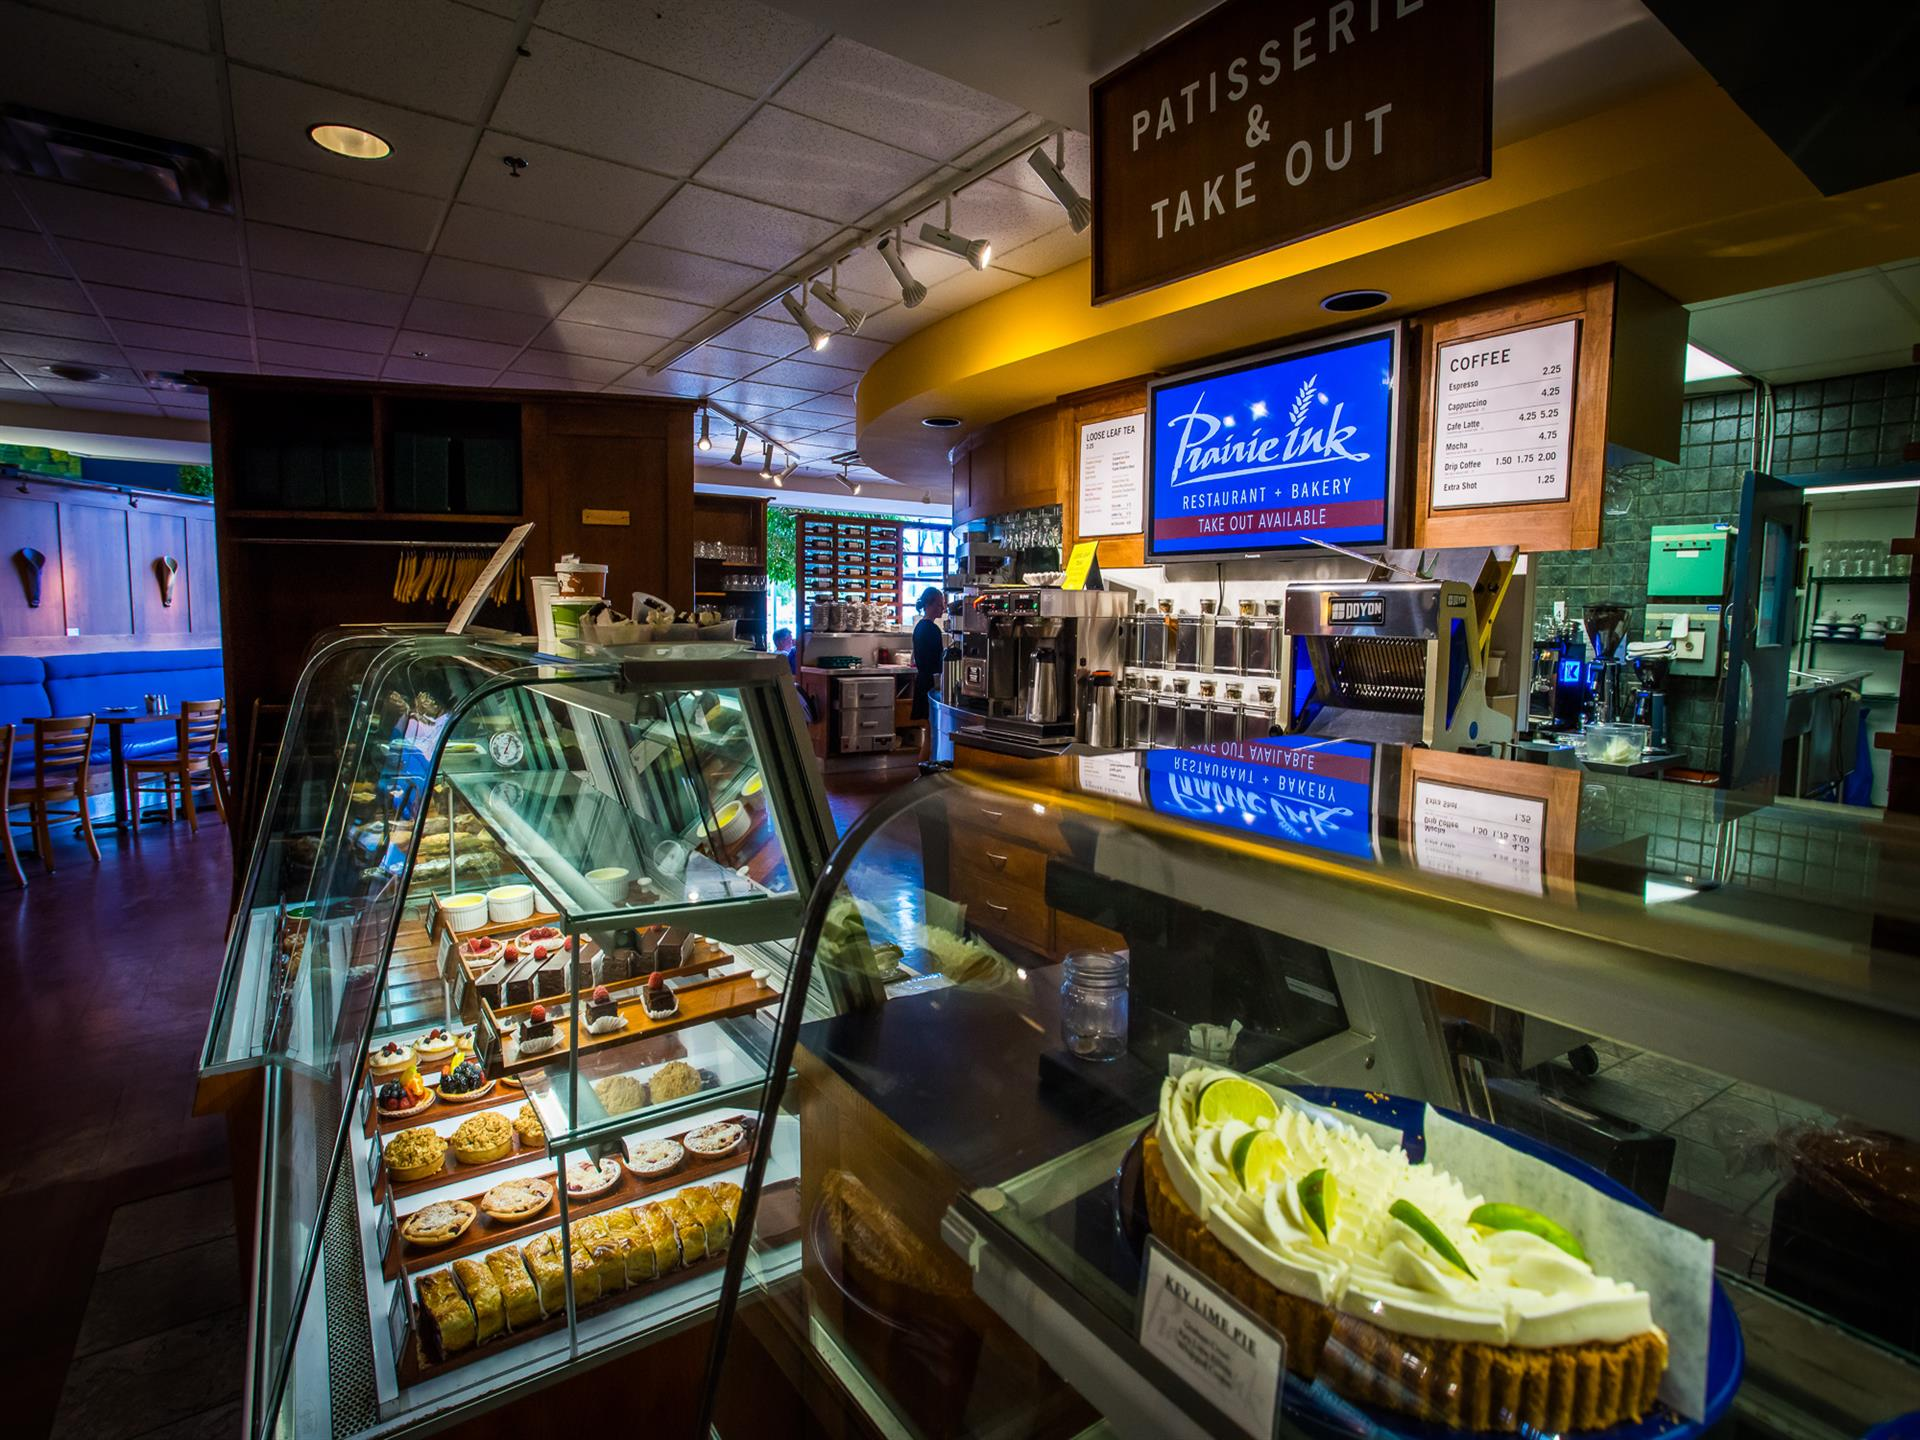 Interior shot of the pastry store